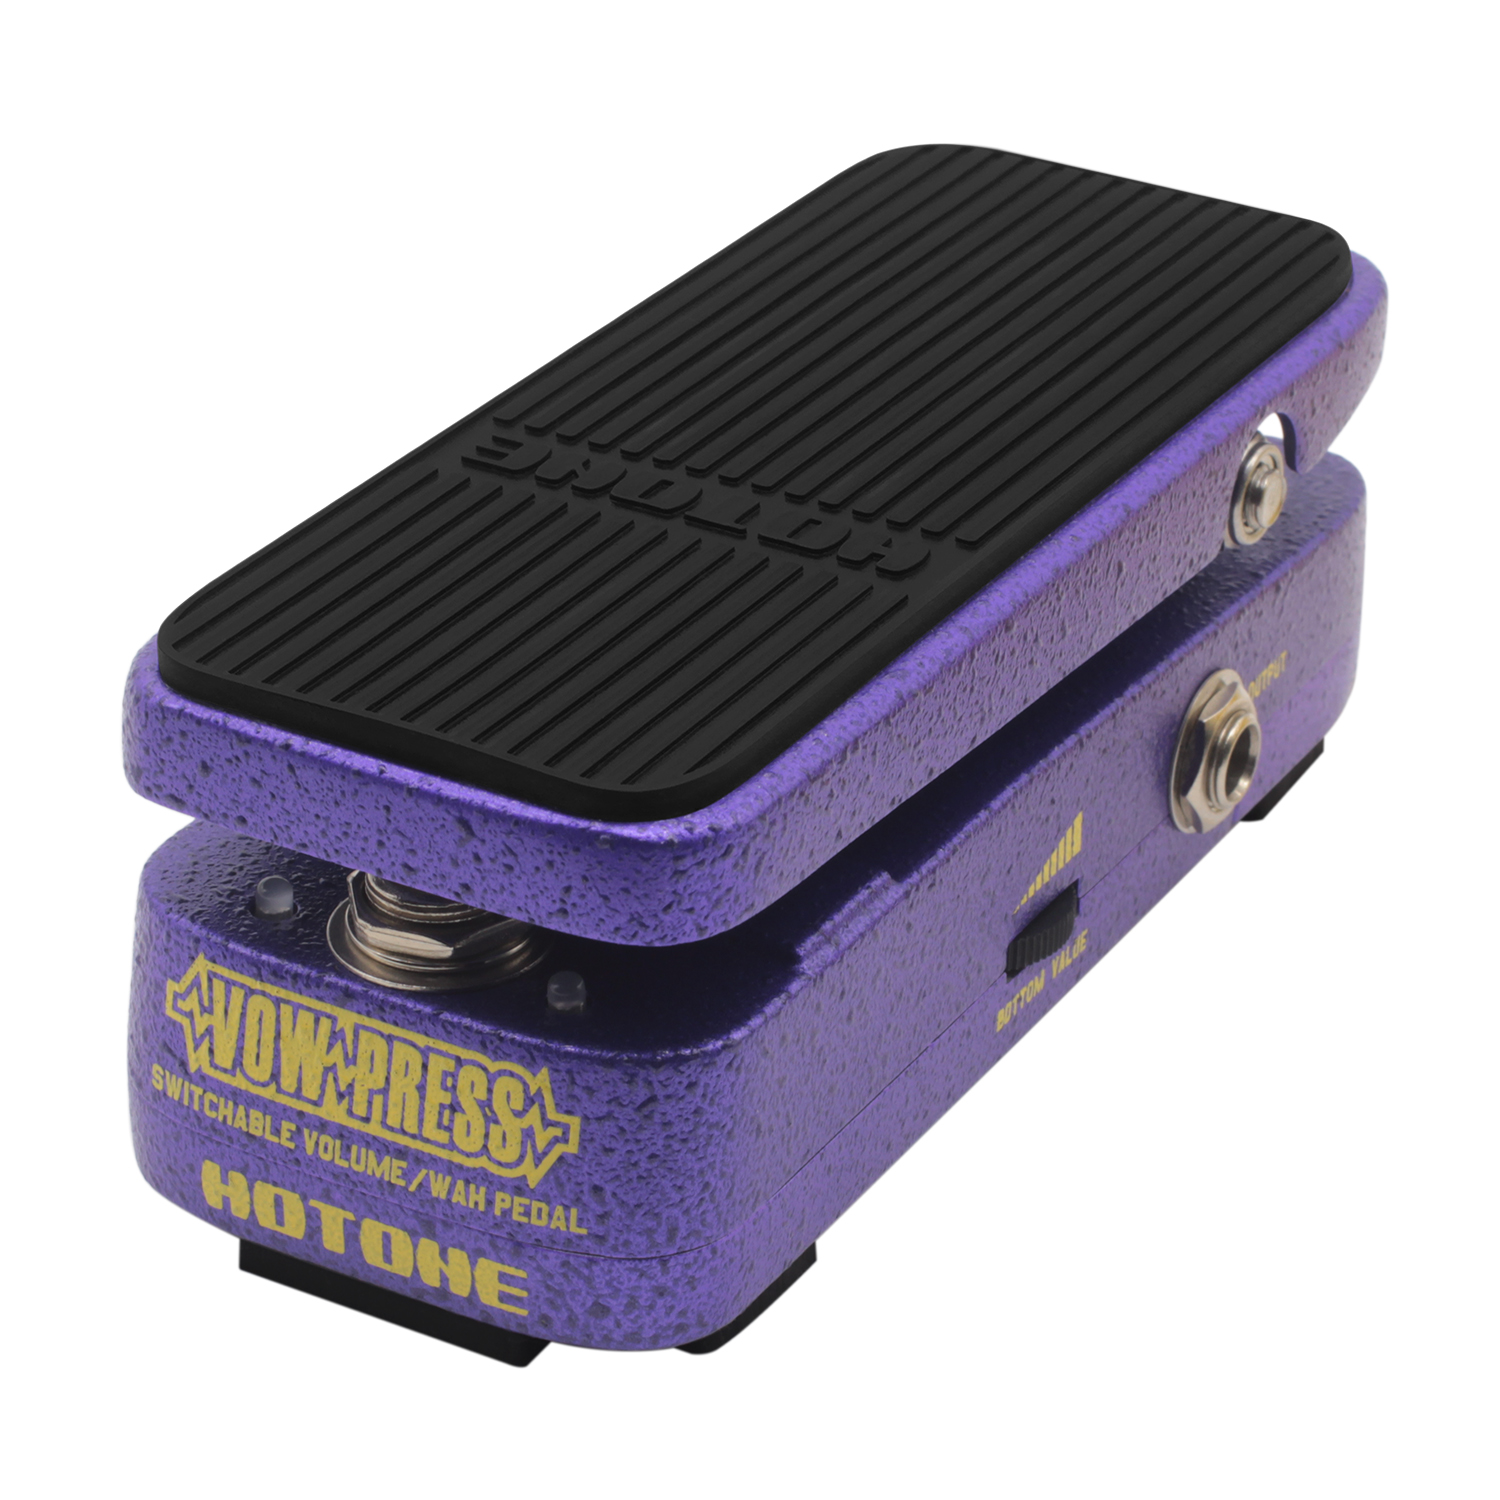 Hotone Vow Press Volume Wah Effect Pedal Based on CryBaby Wah Pedal 3-in-1 Electric Guitar Effects Adjustable Ccontrol Range hotone soul press volume expression wah wah guitar pedal cry baby sound